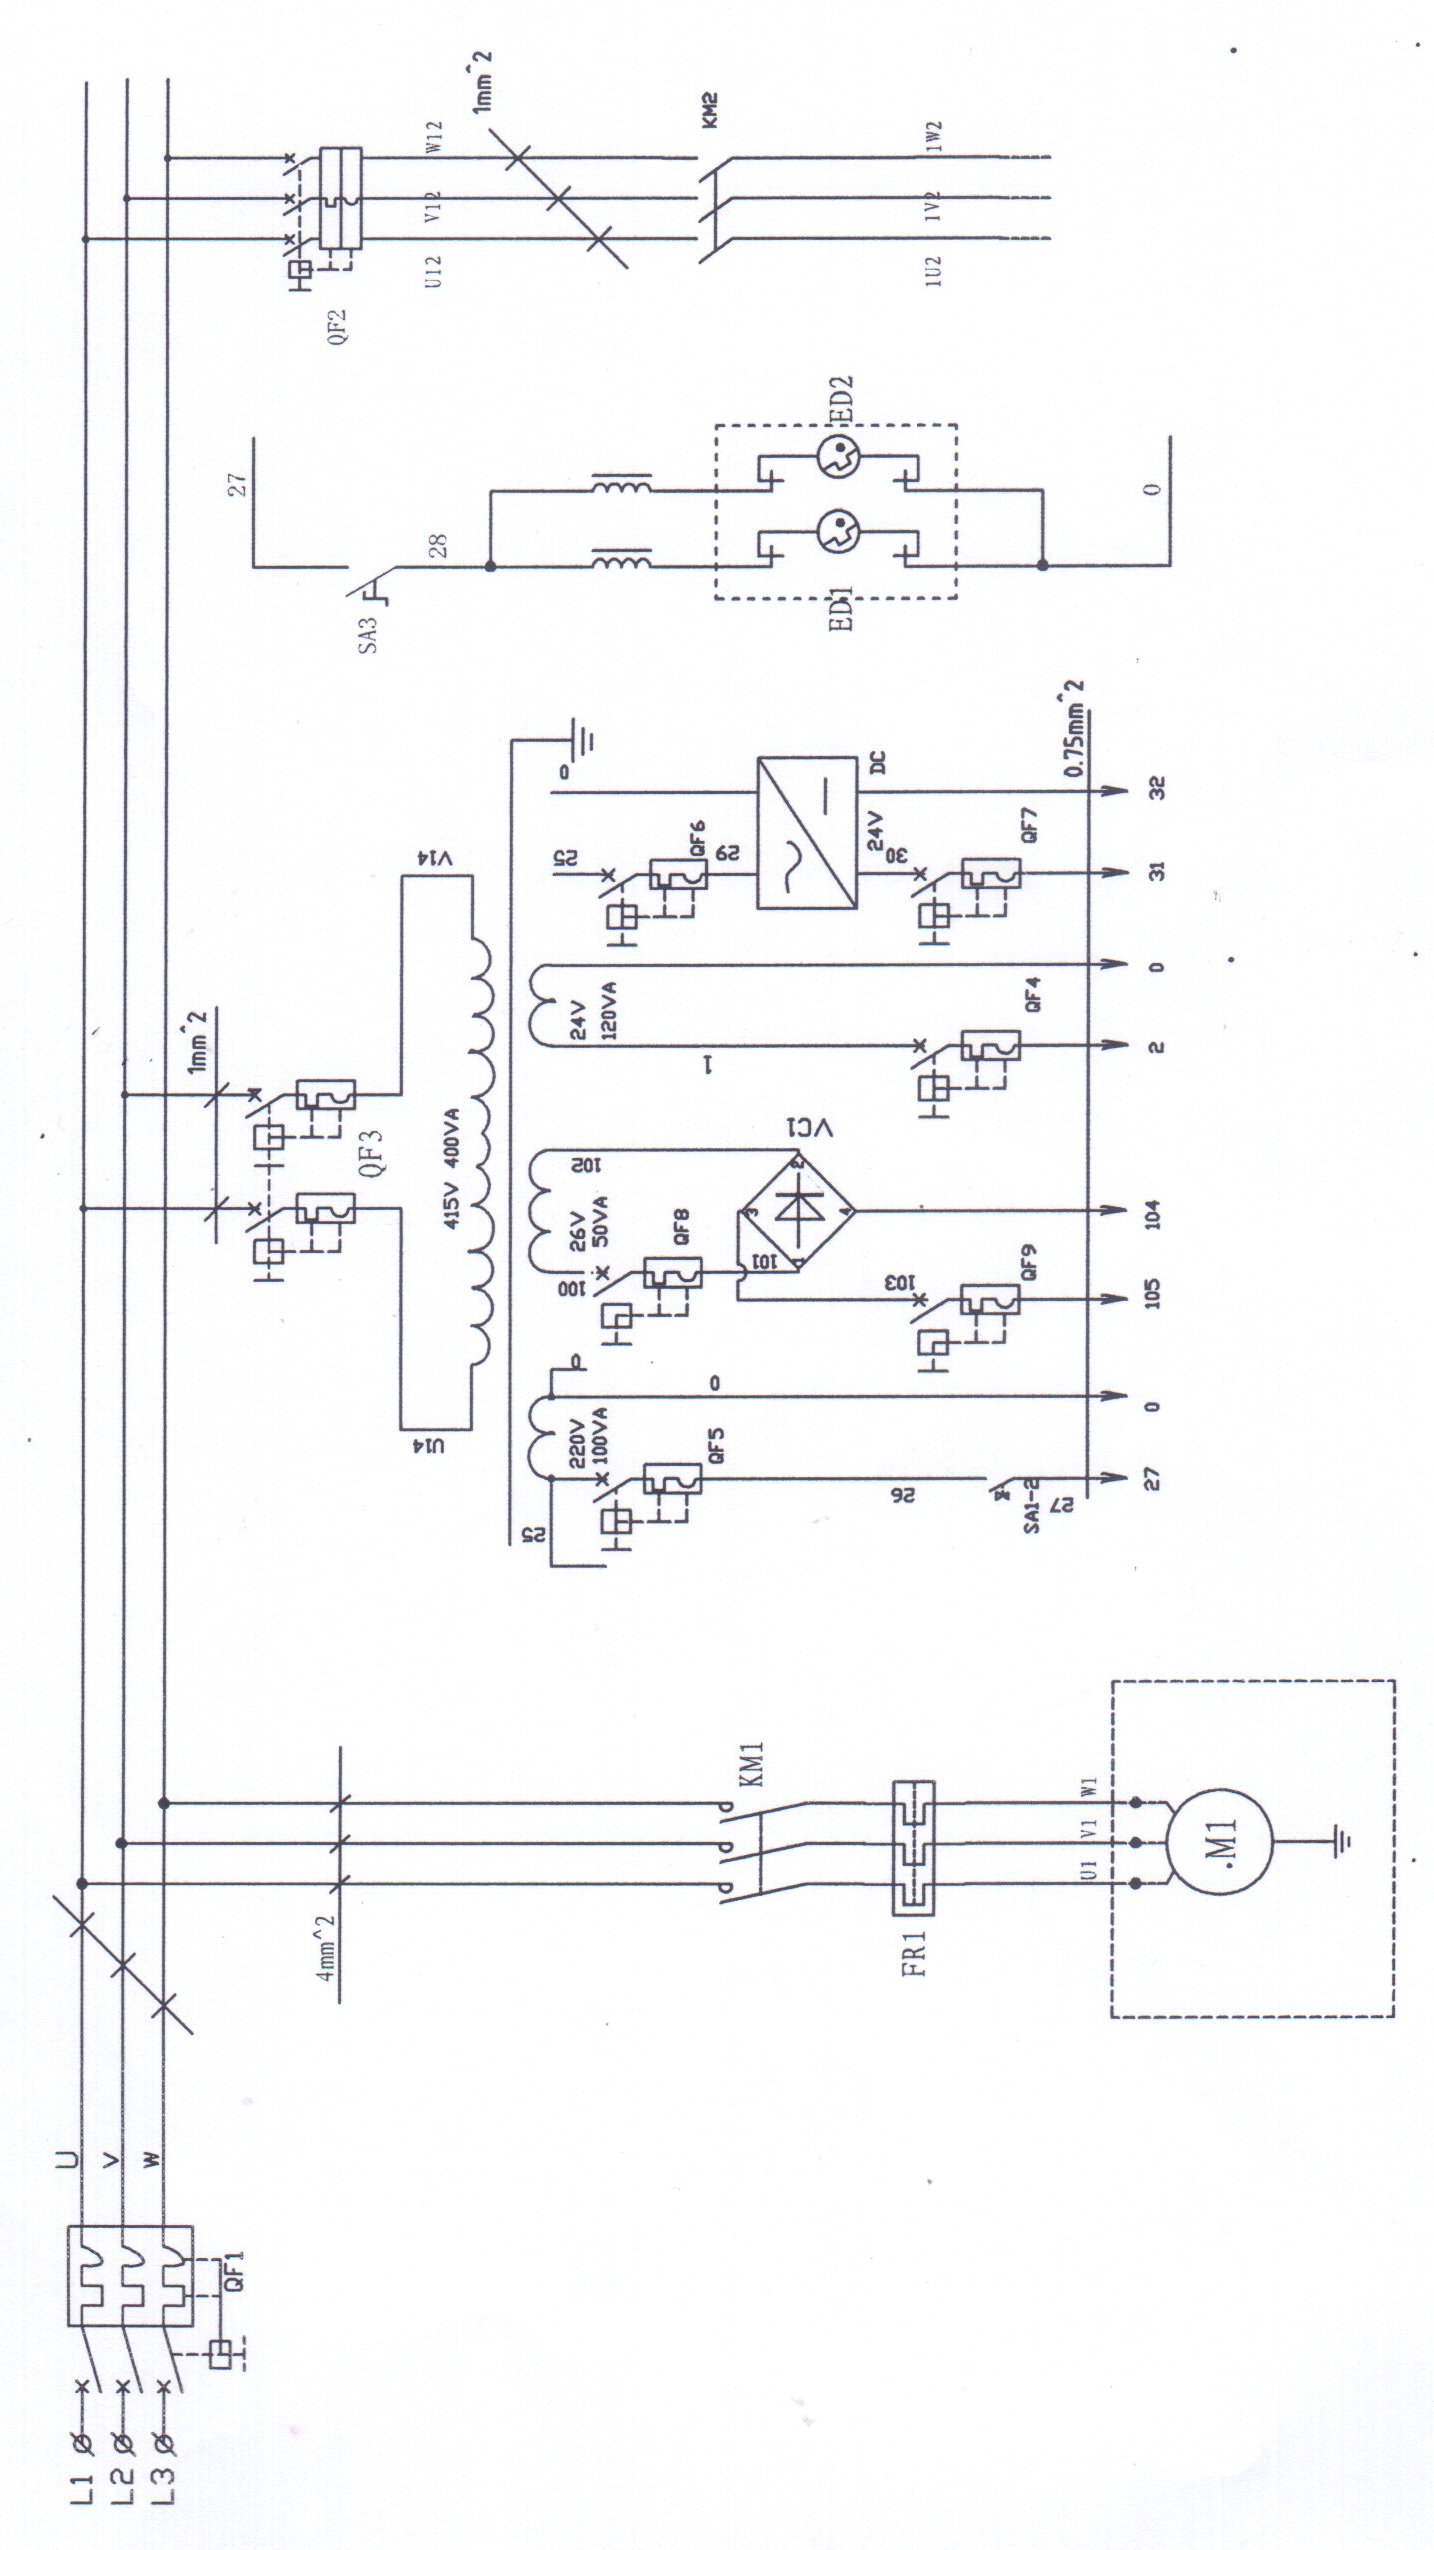 hight resolution of limit switch wiring diagram hydraulic ram wiring library honeywell limit switch wire diagram limit switch wiring diagram hydraulic ram